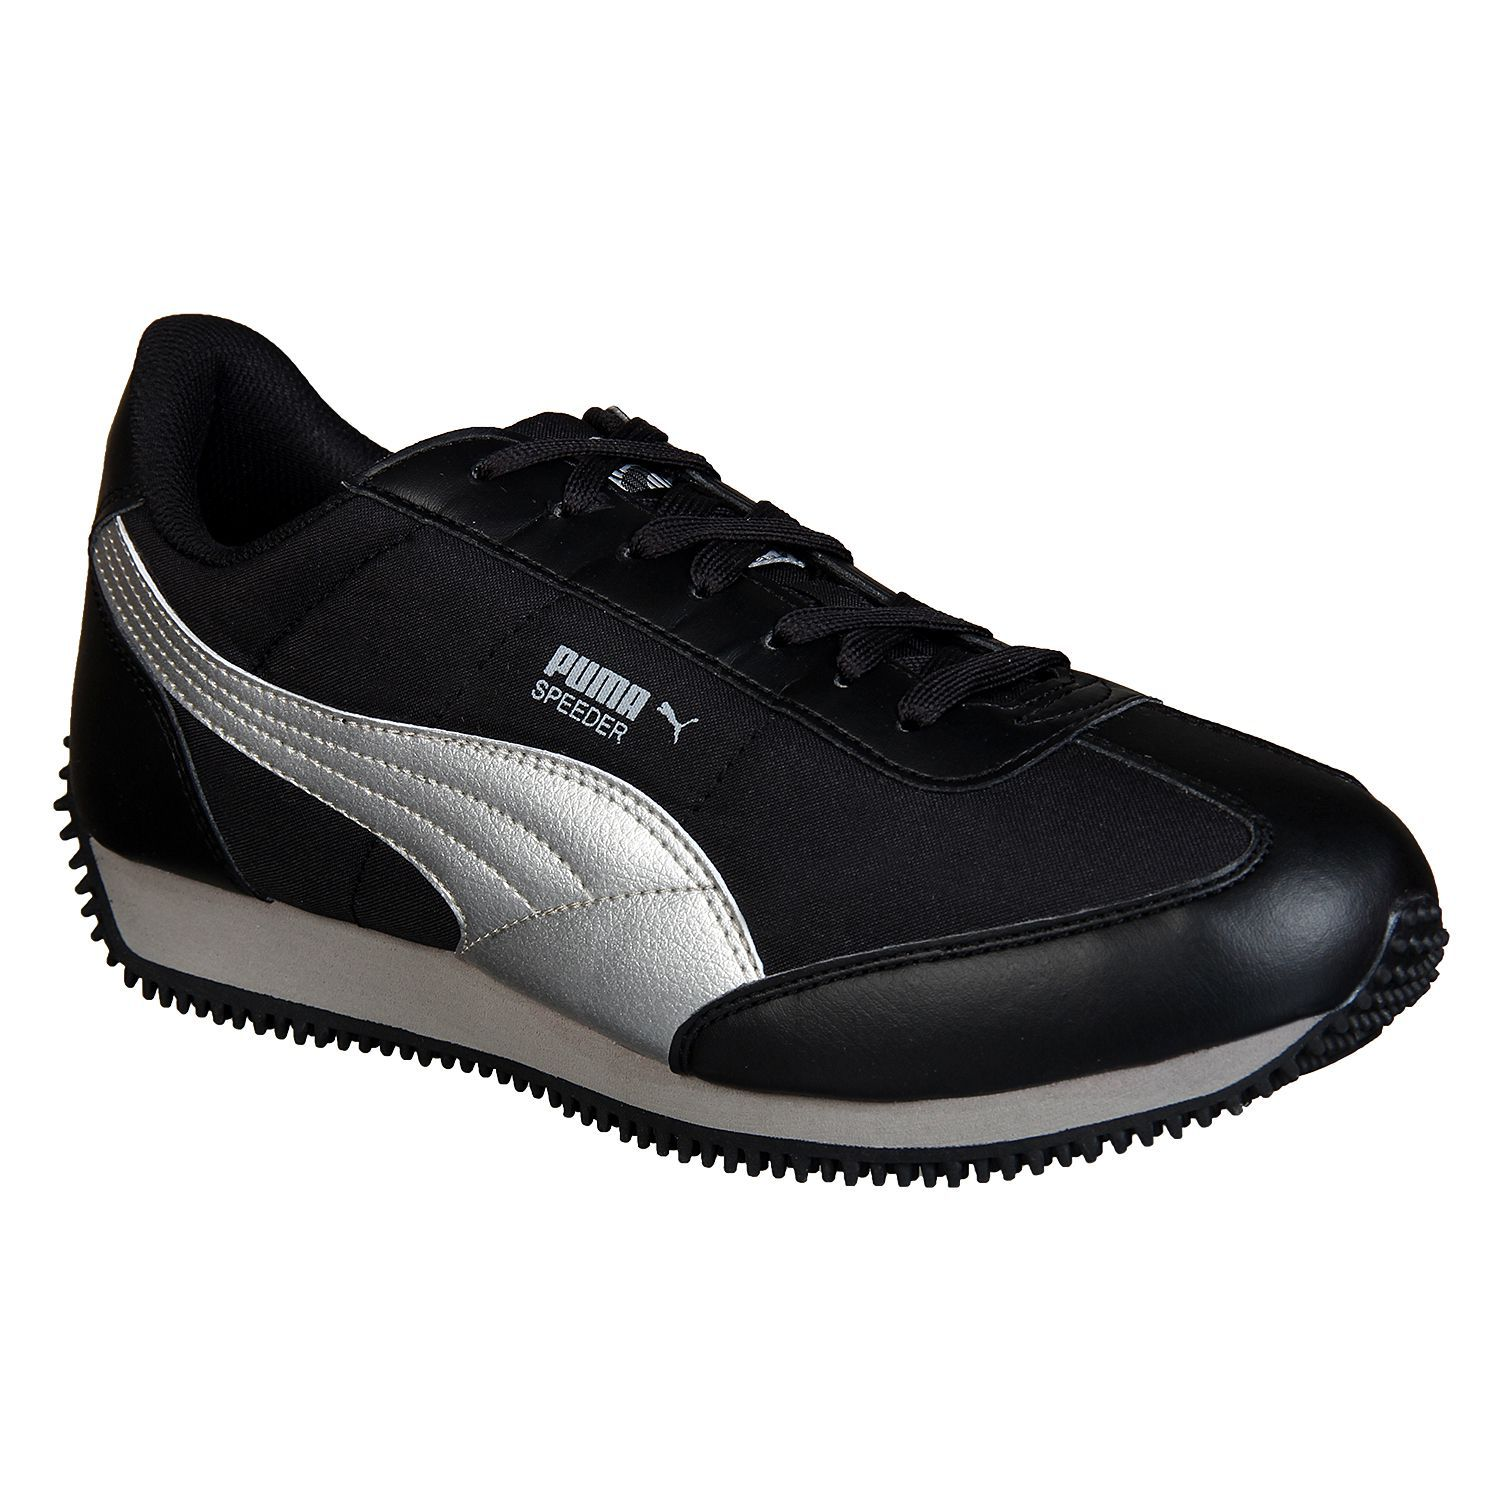 2a2c7acda78bda Puma Speeder Tetron II Ind. Black Running Shoes - Buy Puma Speeder Tetron  II Ind. Black Running Shoes Online at Best Prices in India on Snapdeal